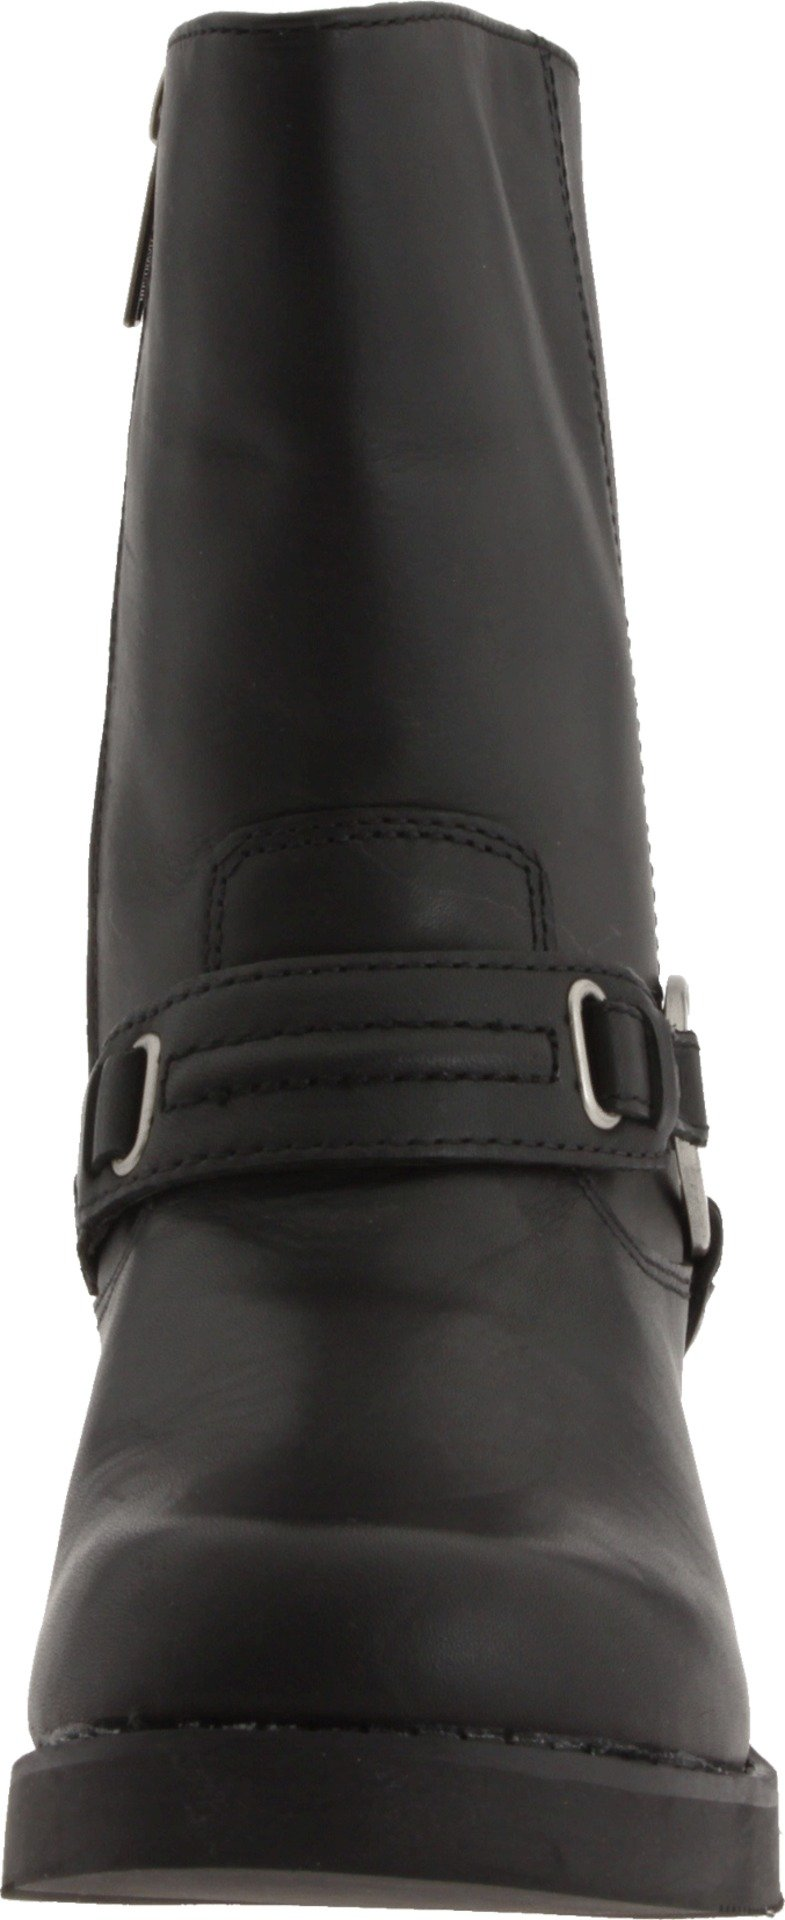 Harley-Davidson Women's Christa Motorcycle Harness Boot, Black, 11 M US by Harley-Davidson (Image #4)